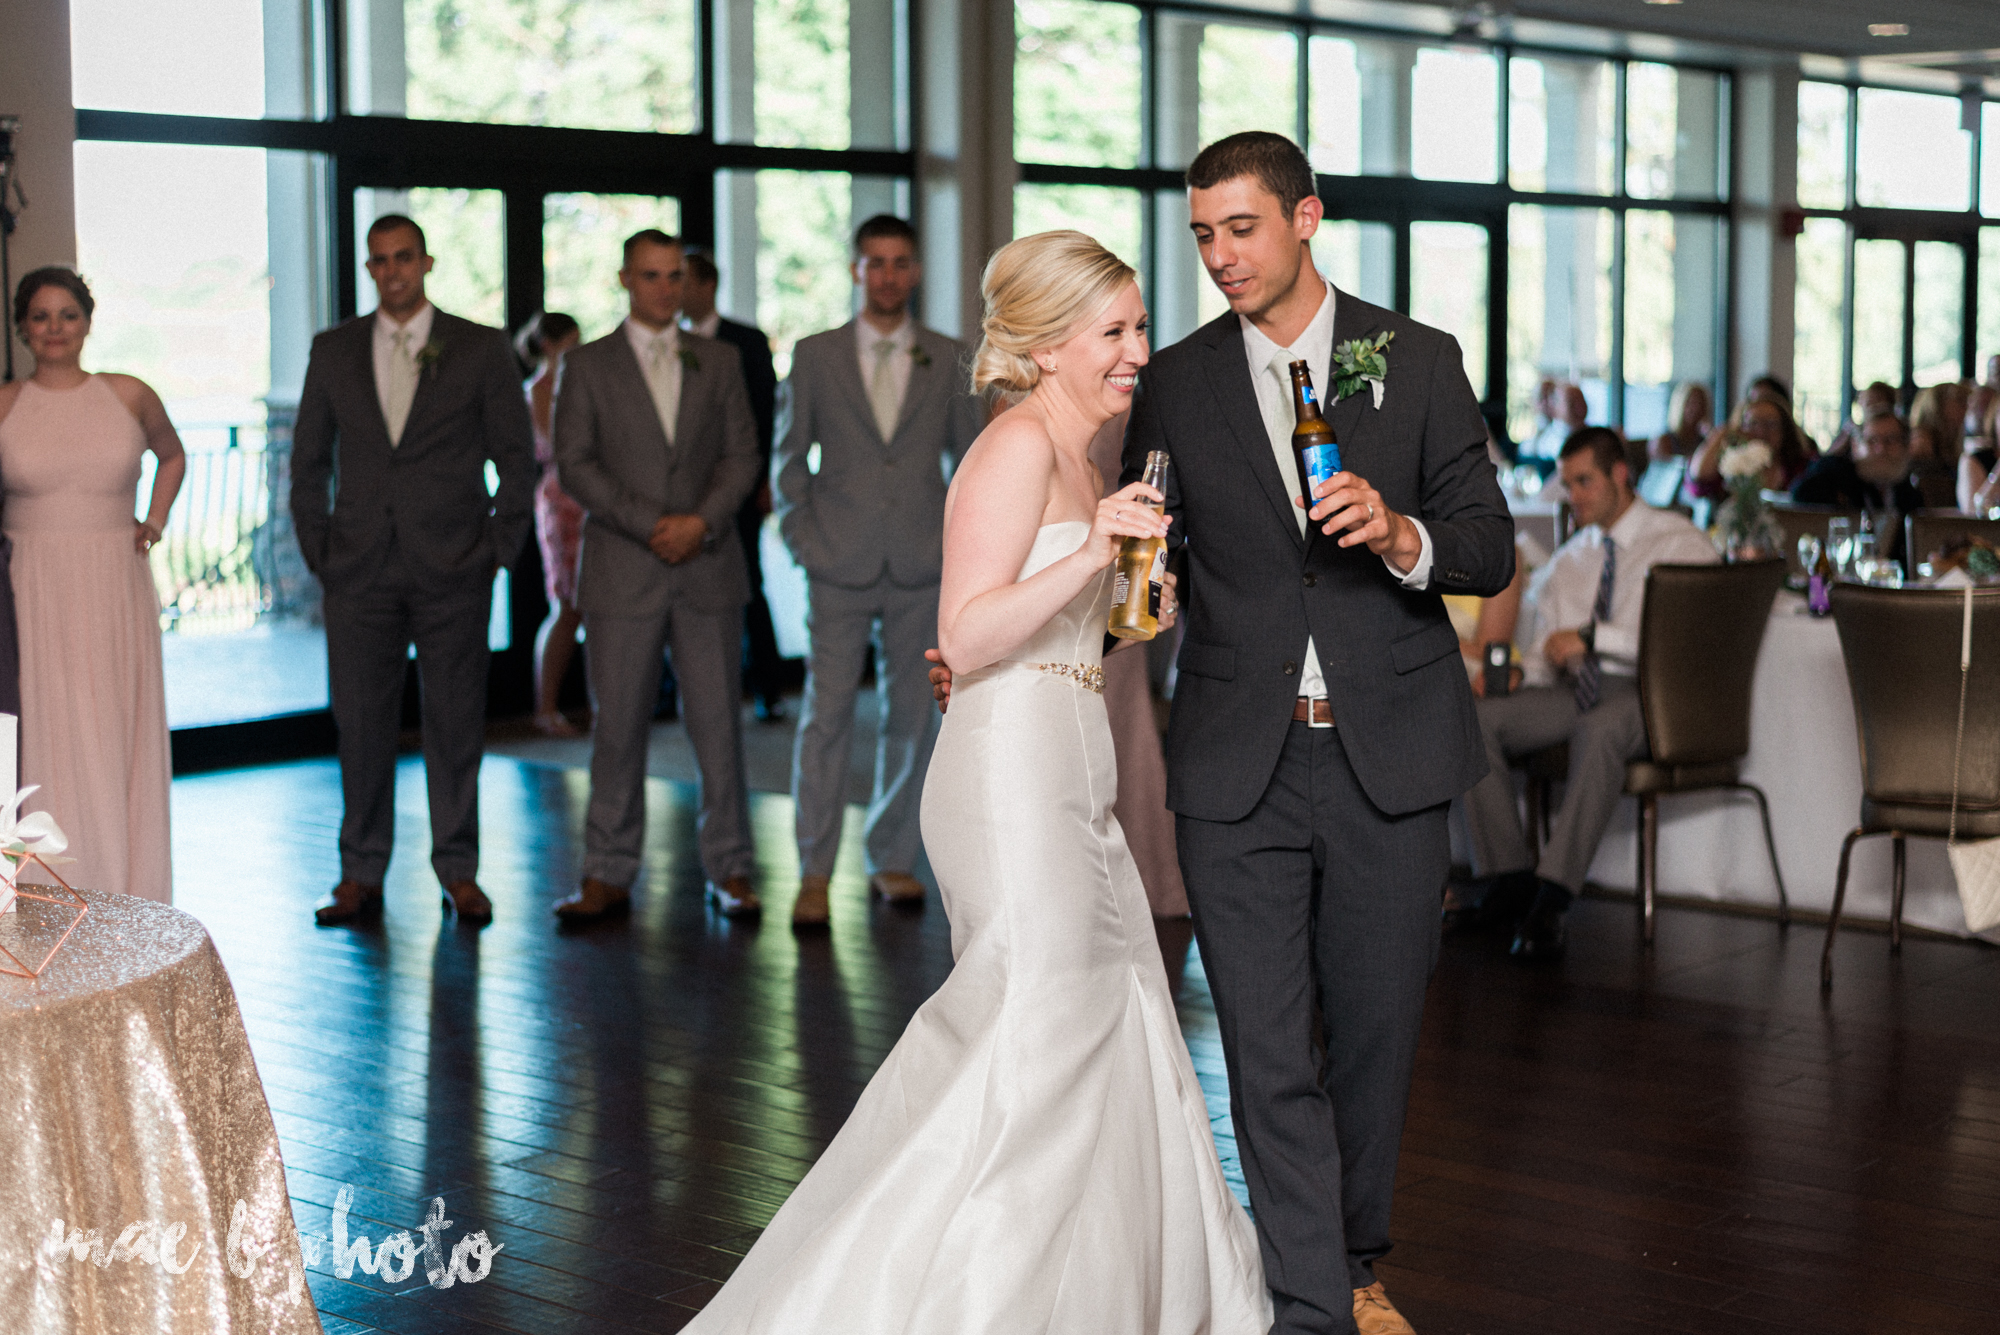 emily and michael's industrial chic summer country club wedding at the lake club in poland ohio photographed by cleveland wedding photographer mae b photo-115.jpg